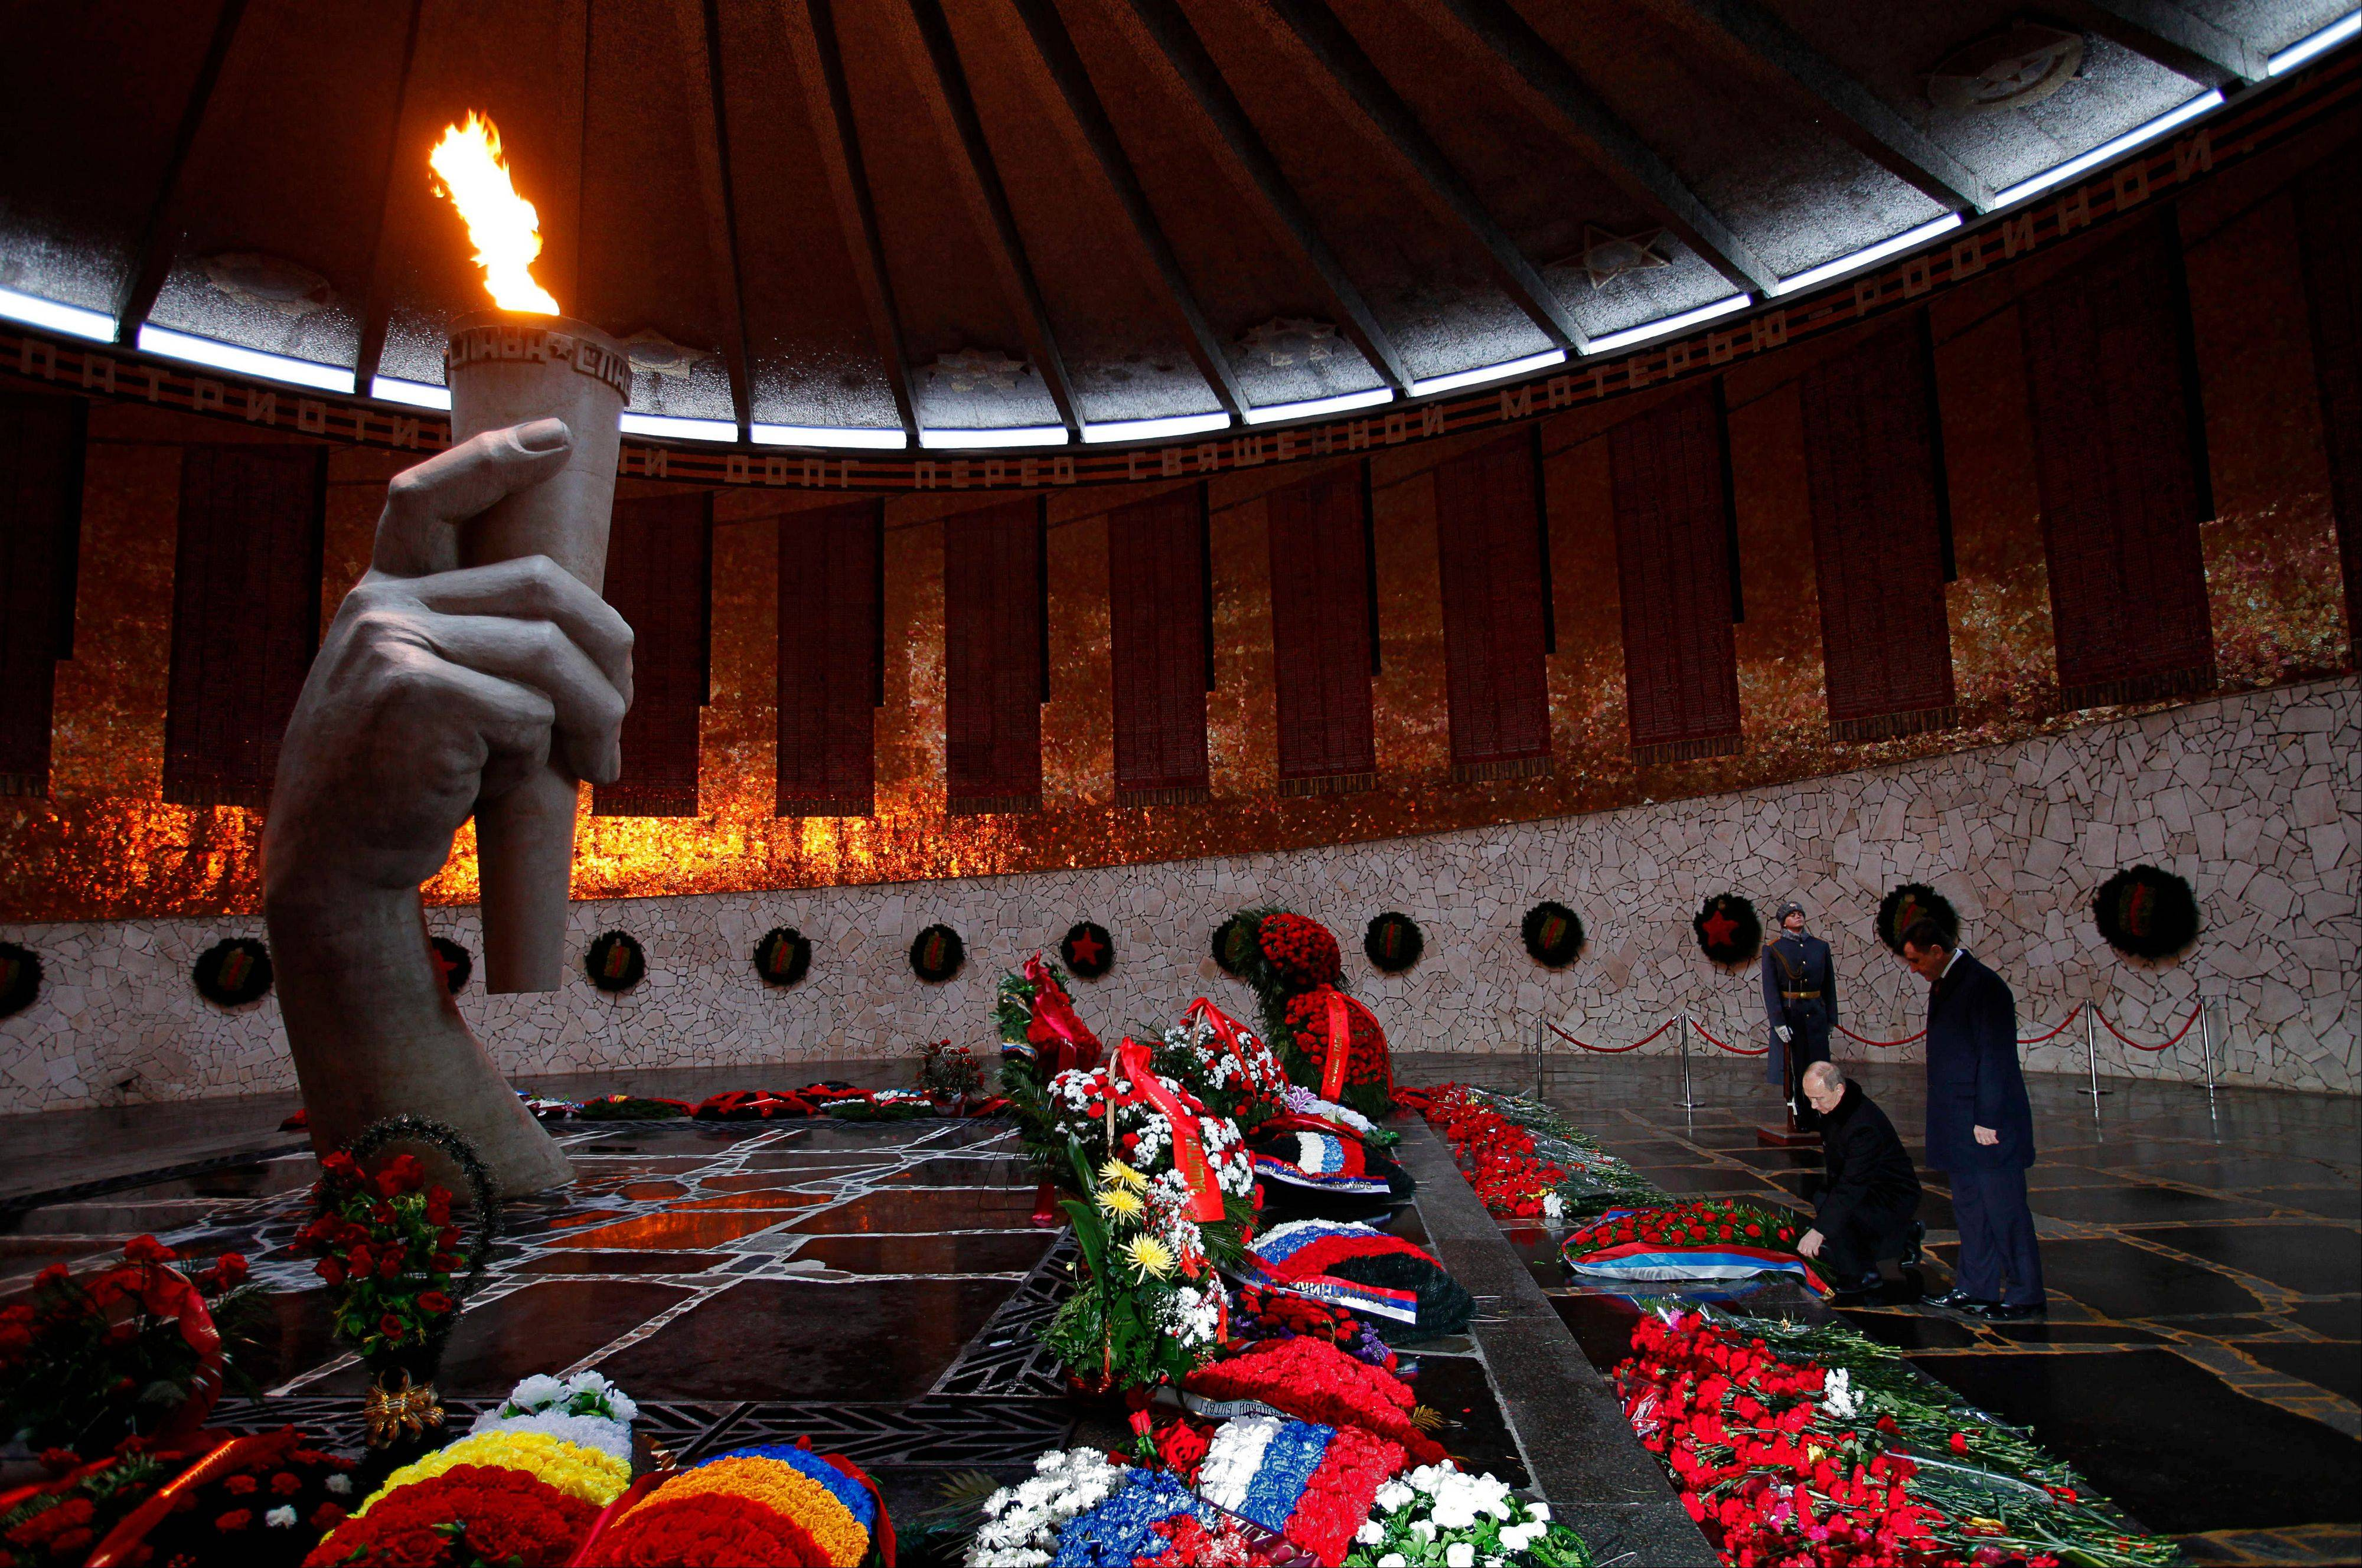 Associated PressPresident Vladimir Putin, second right, lays a wreath at the Eternal Flame as he takes part in ceremonies marking the 70th anniversary of the Battle of Stalingrad.